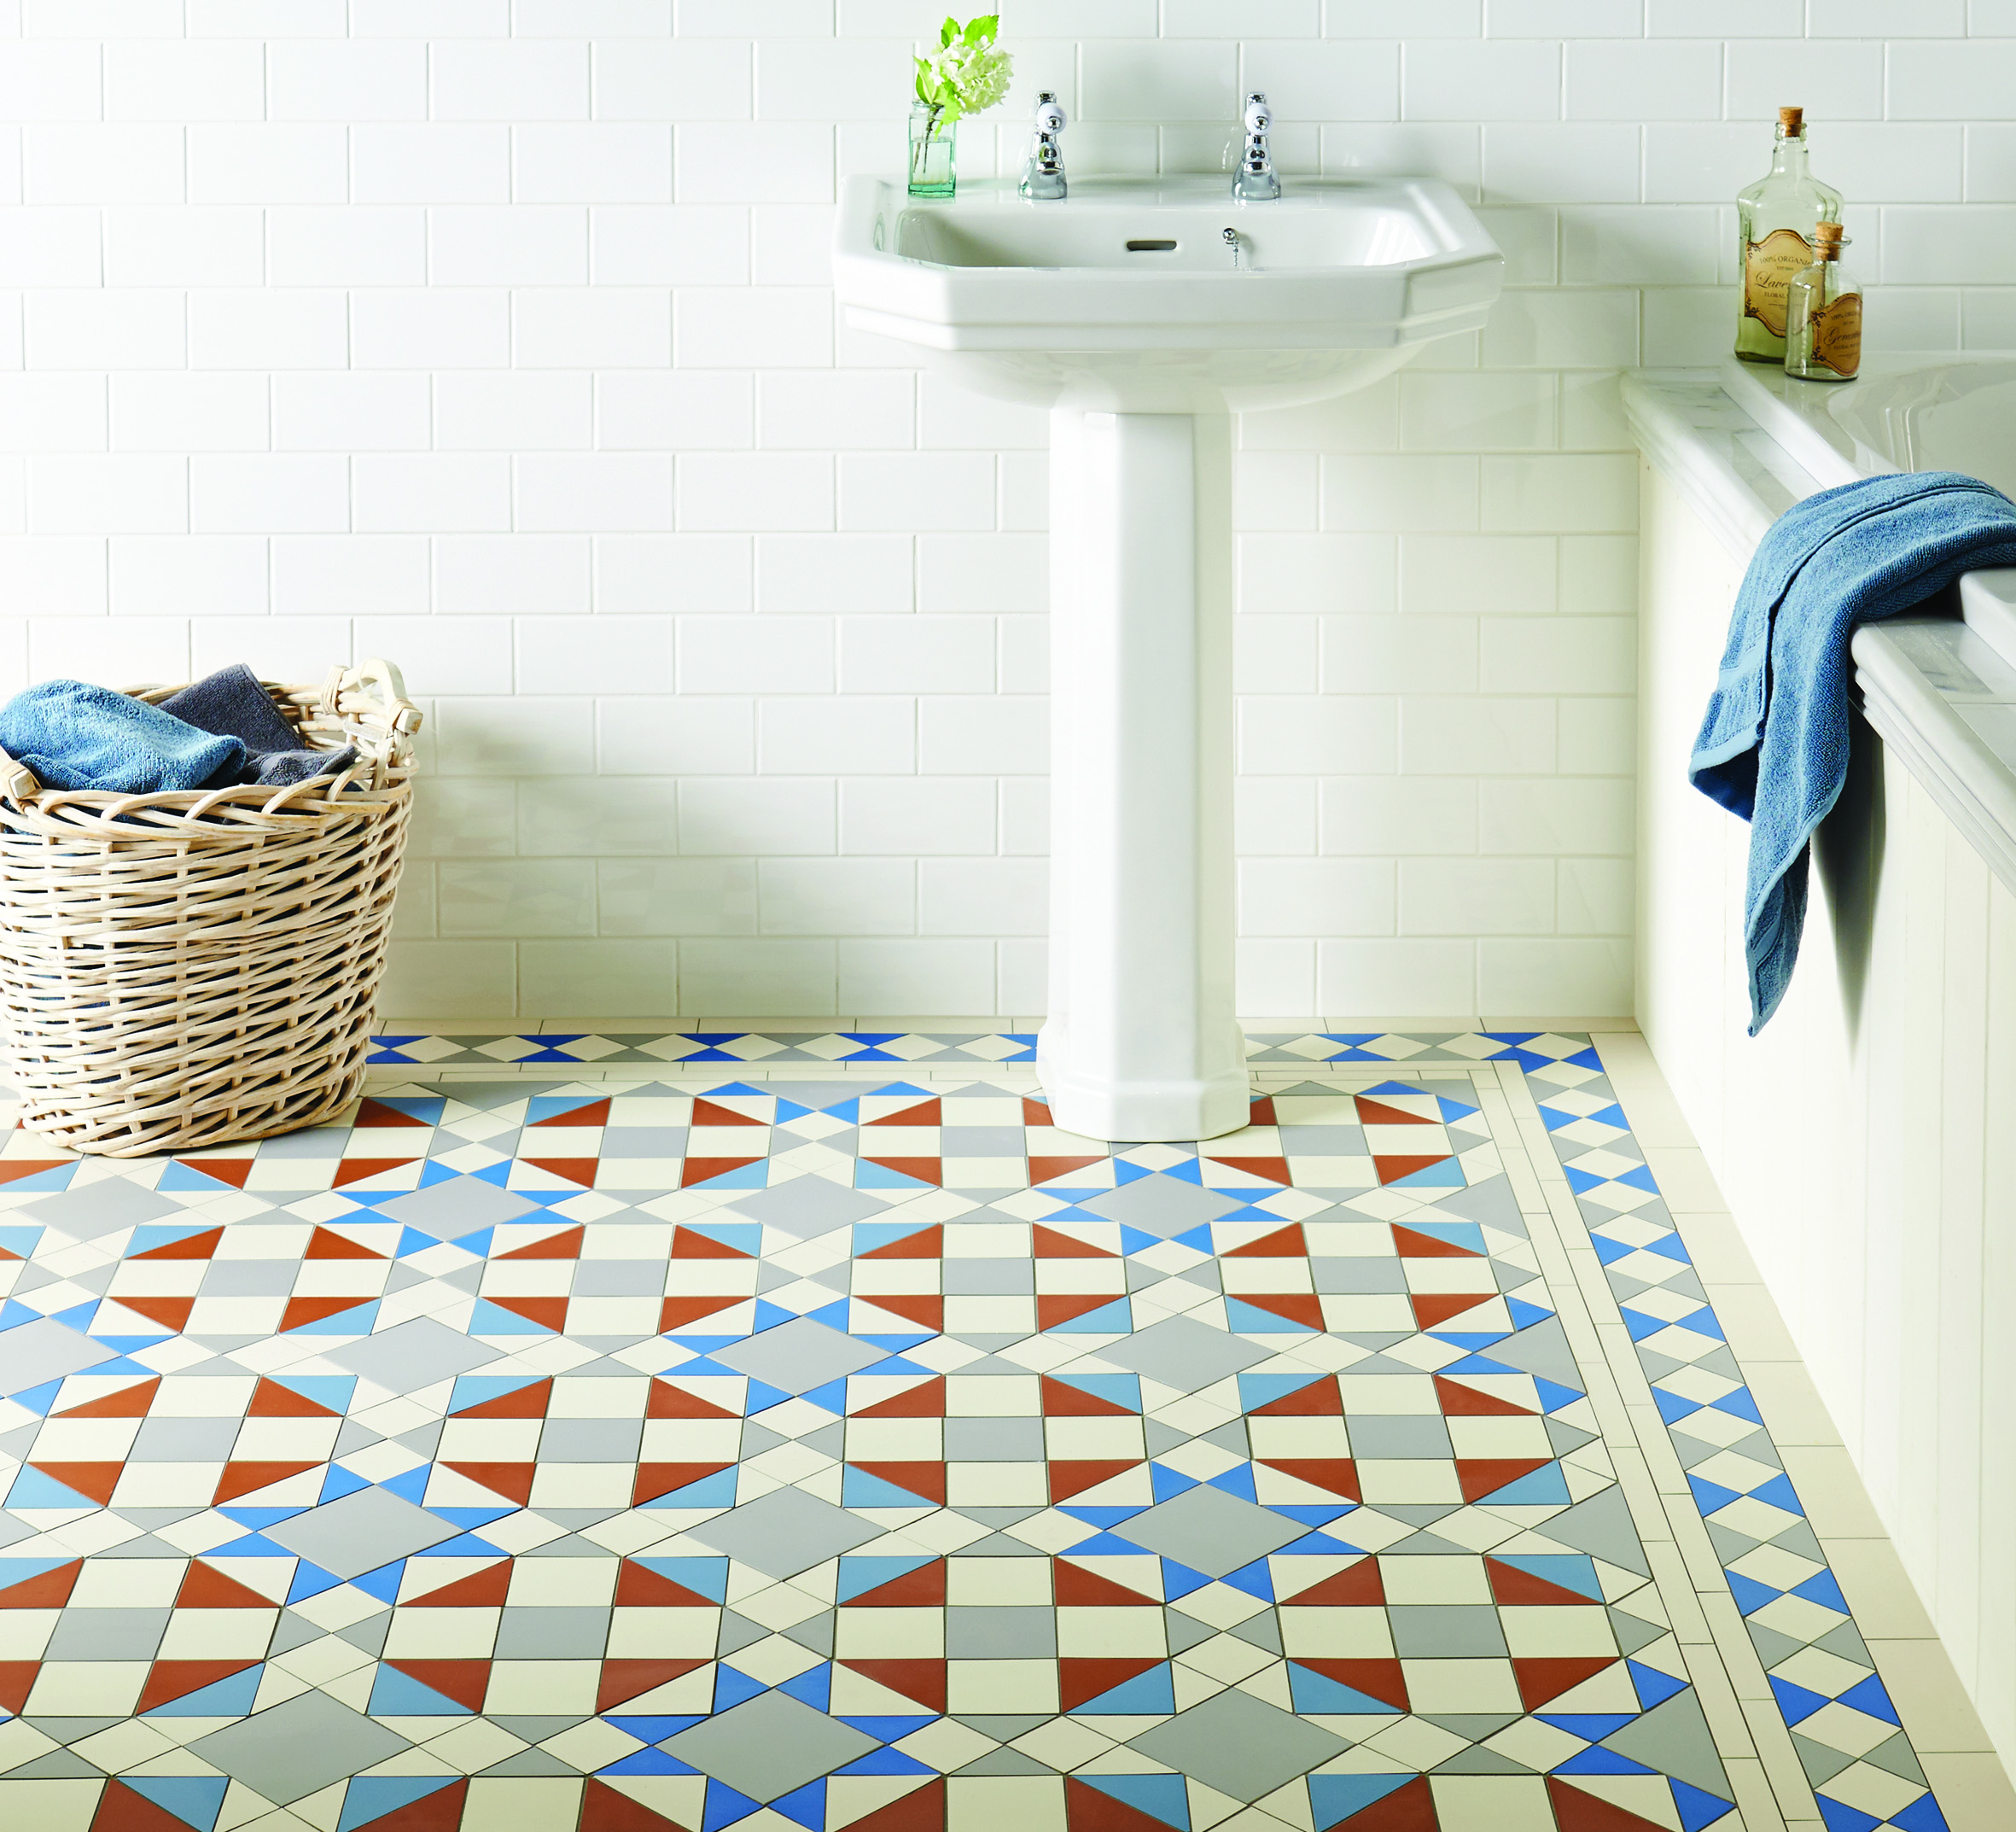 The Eltham pattern with Pugin Blue are both new additions to the range.